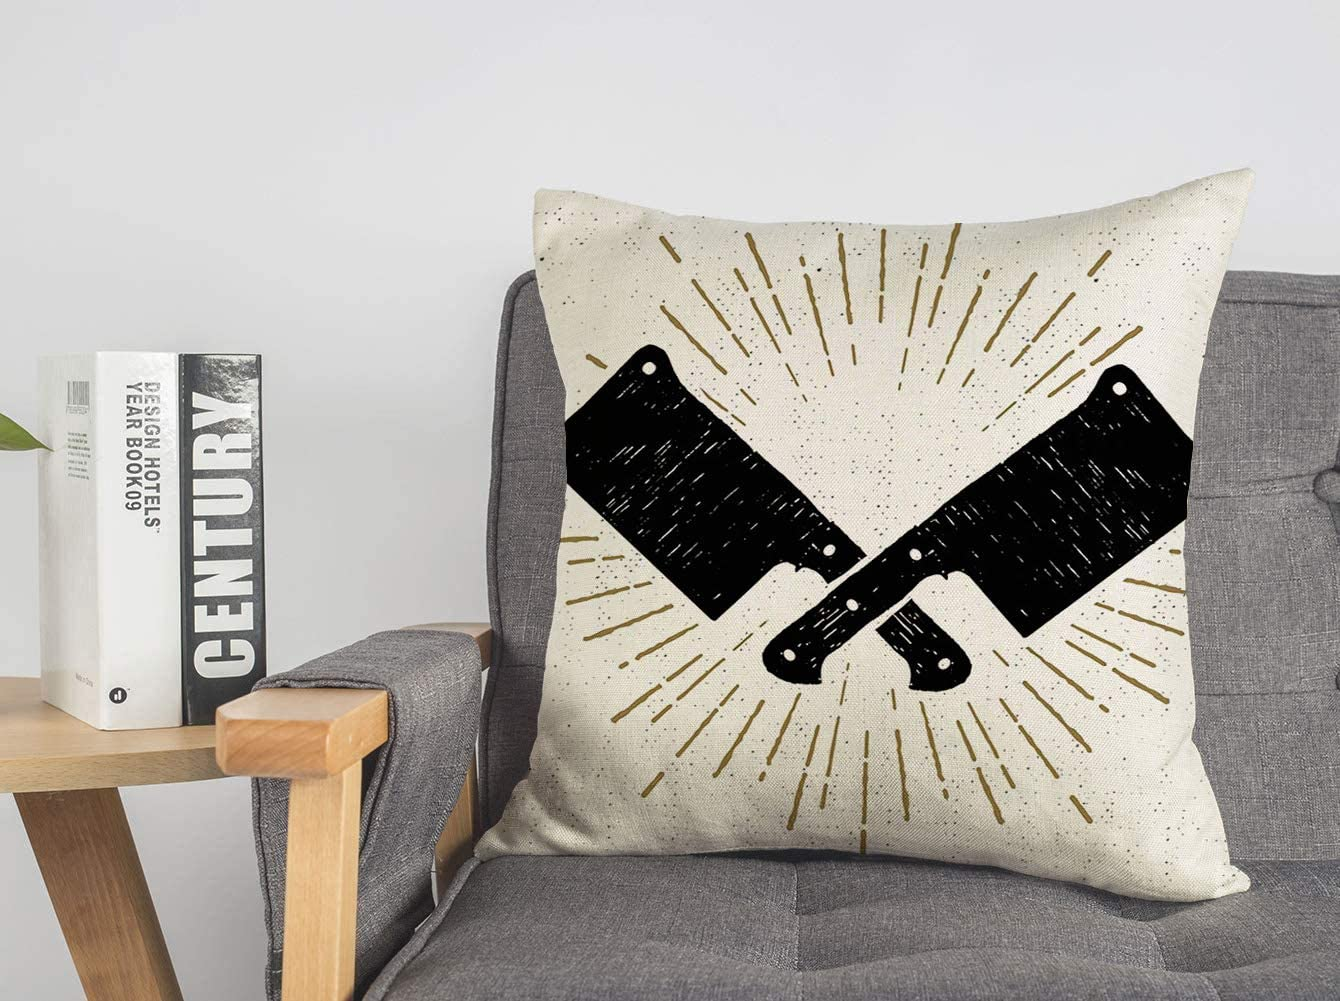 Pillowcase Cushion Case Starburst Hand with Drawn Sign Silhouette Textured Cleaver Knifes Food Drink Tool Objects Blade Cozy Linen Square Decorative Throw Pillow Covers for Couch Bed 18x18 Inch